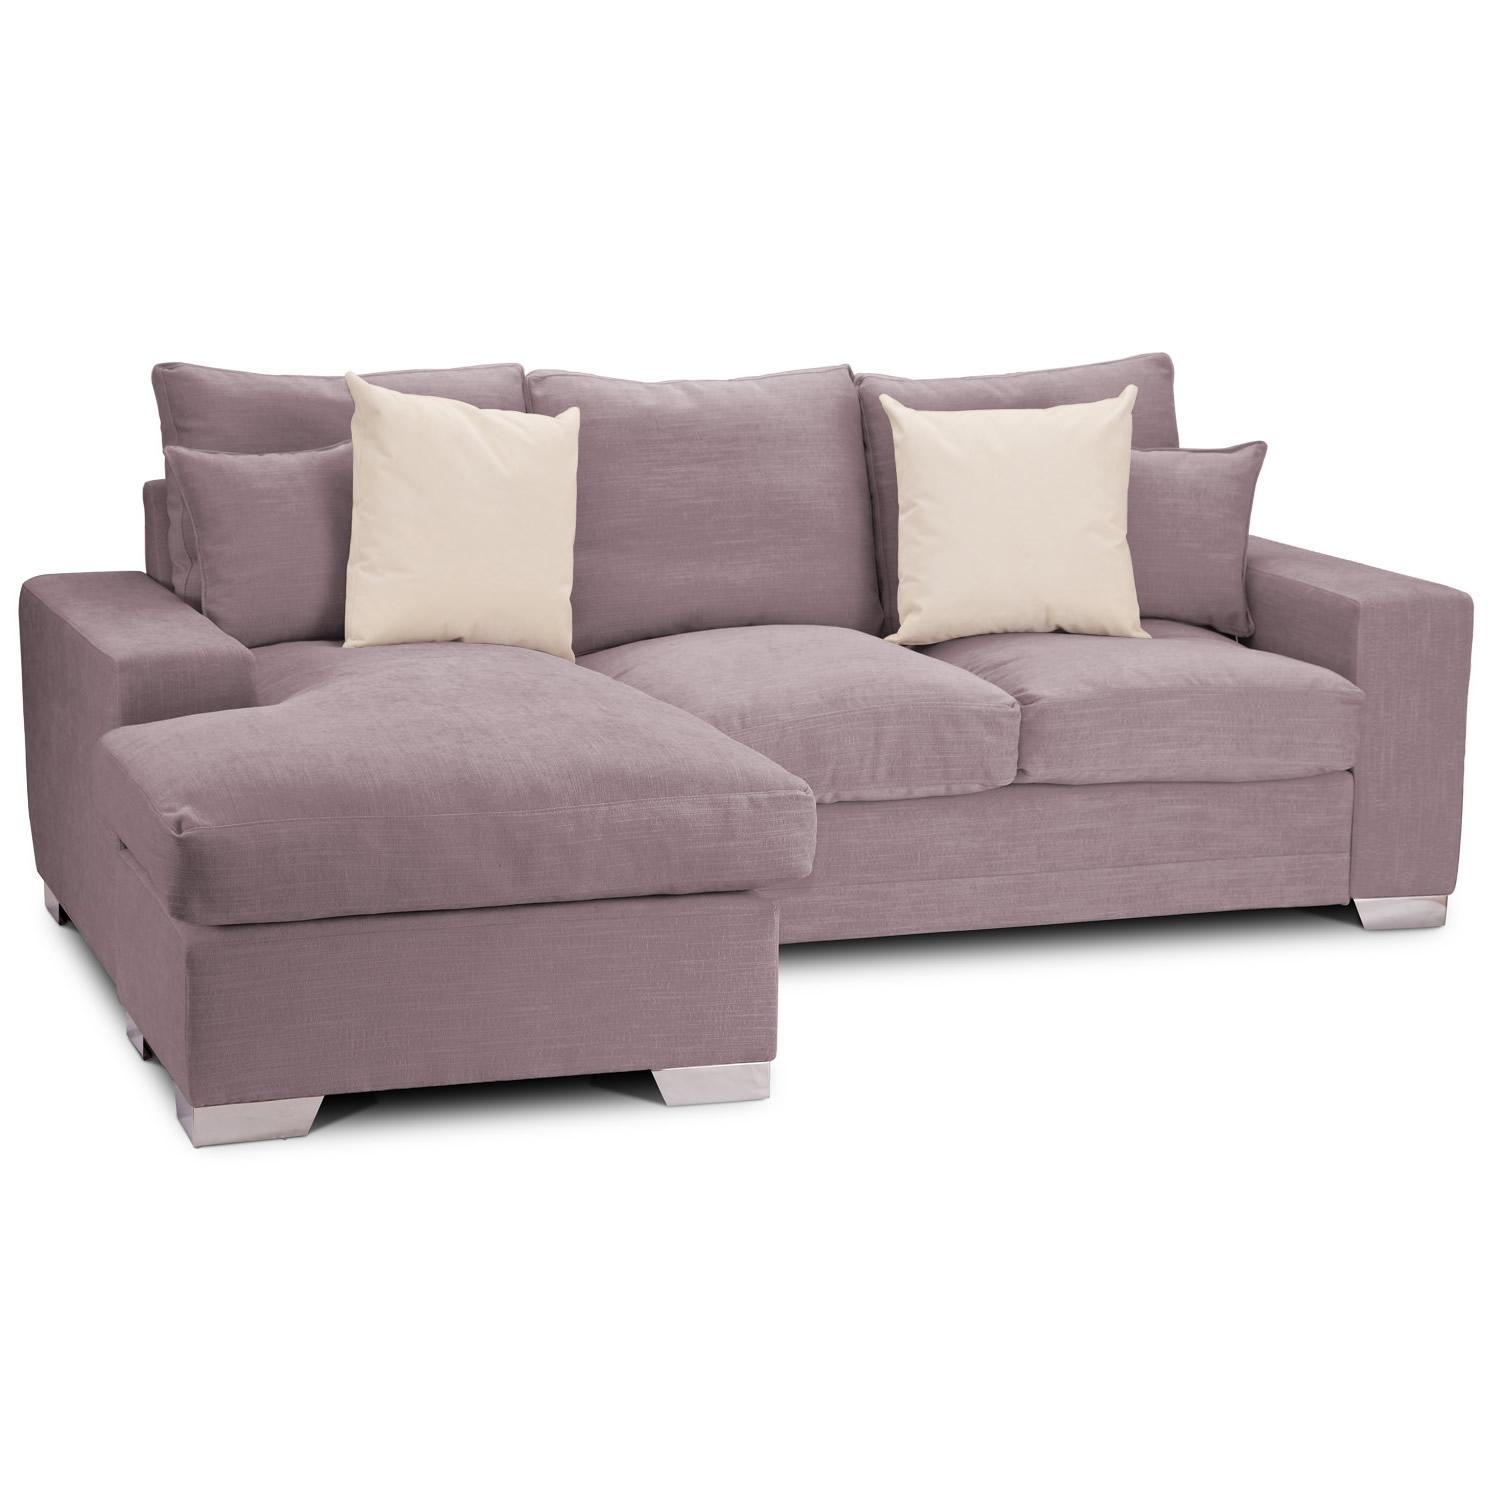 Microfiber Sectional Couch With Chaise Lounge : With Sectional Throughout Short Sectional Sofas (Image 7 of 20)